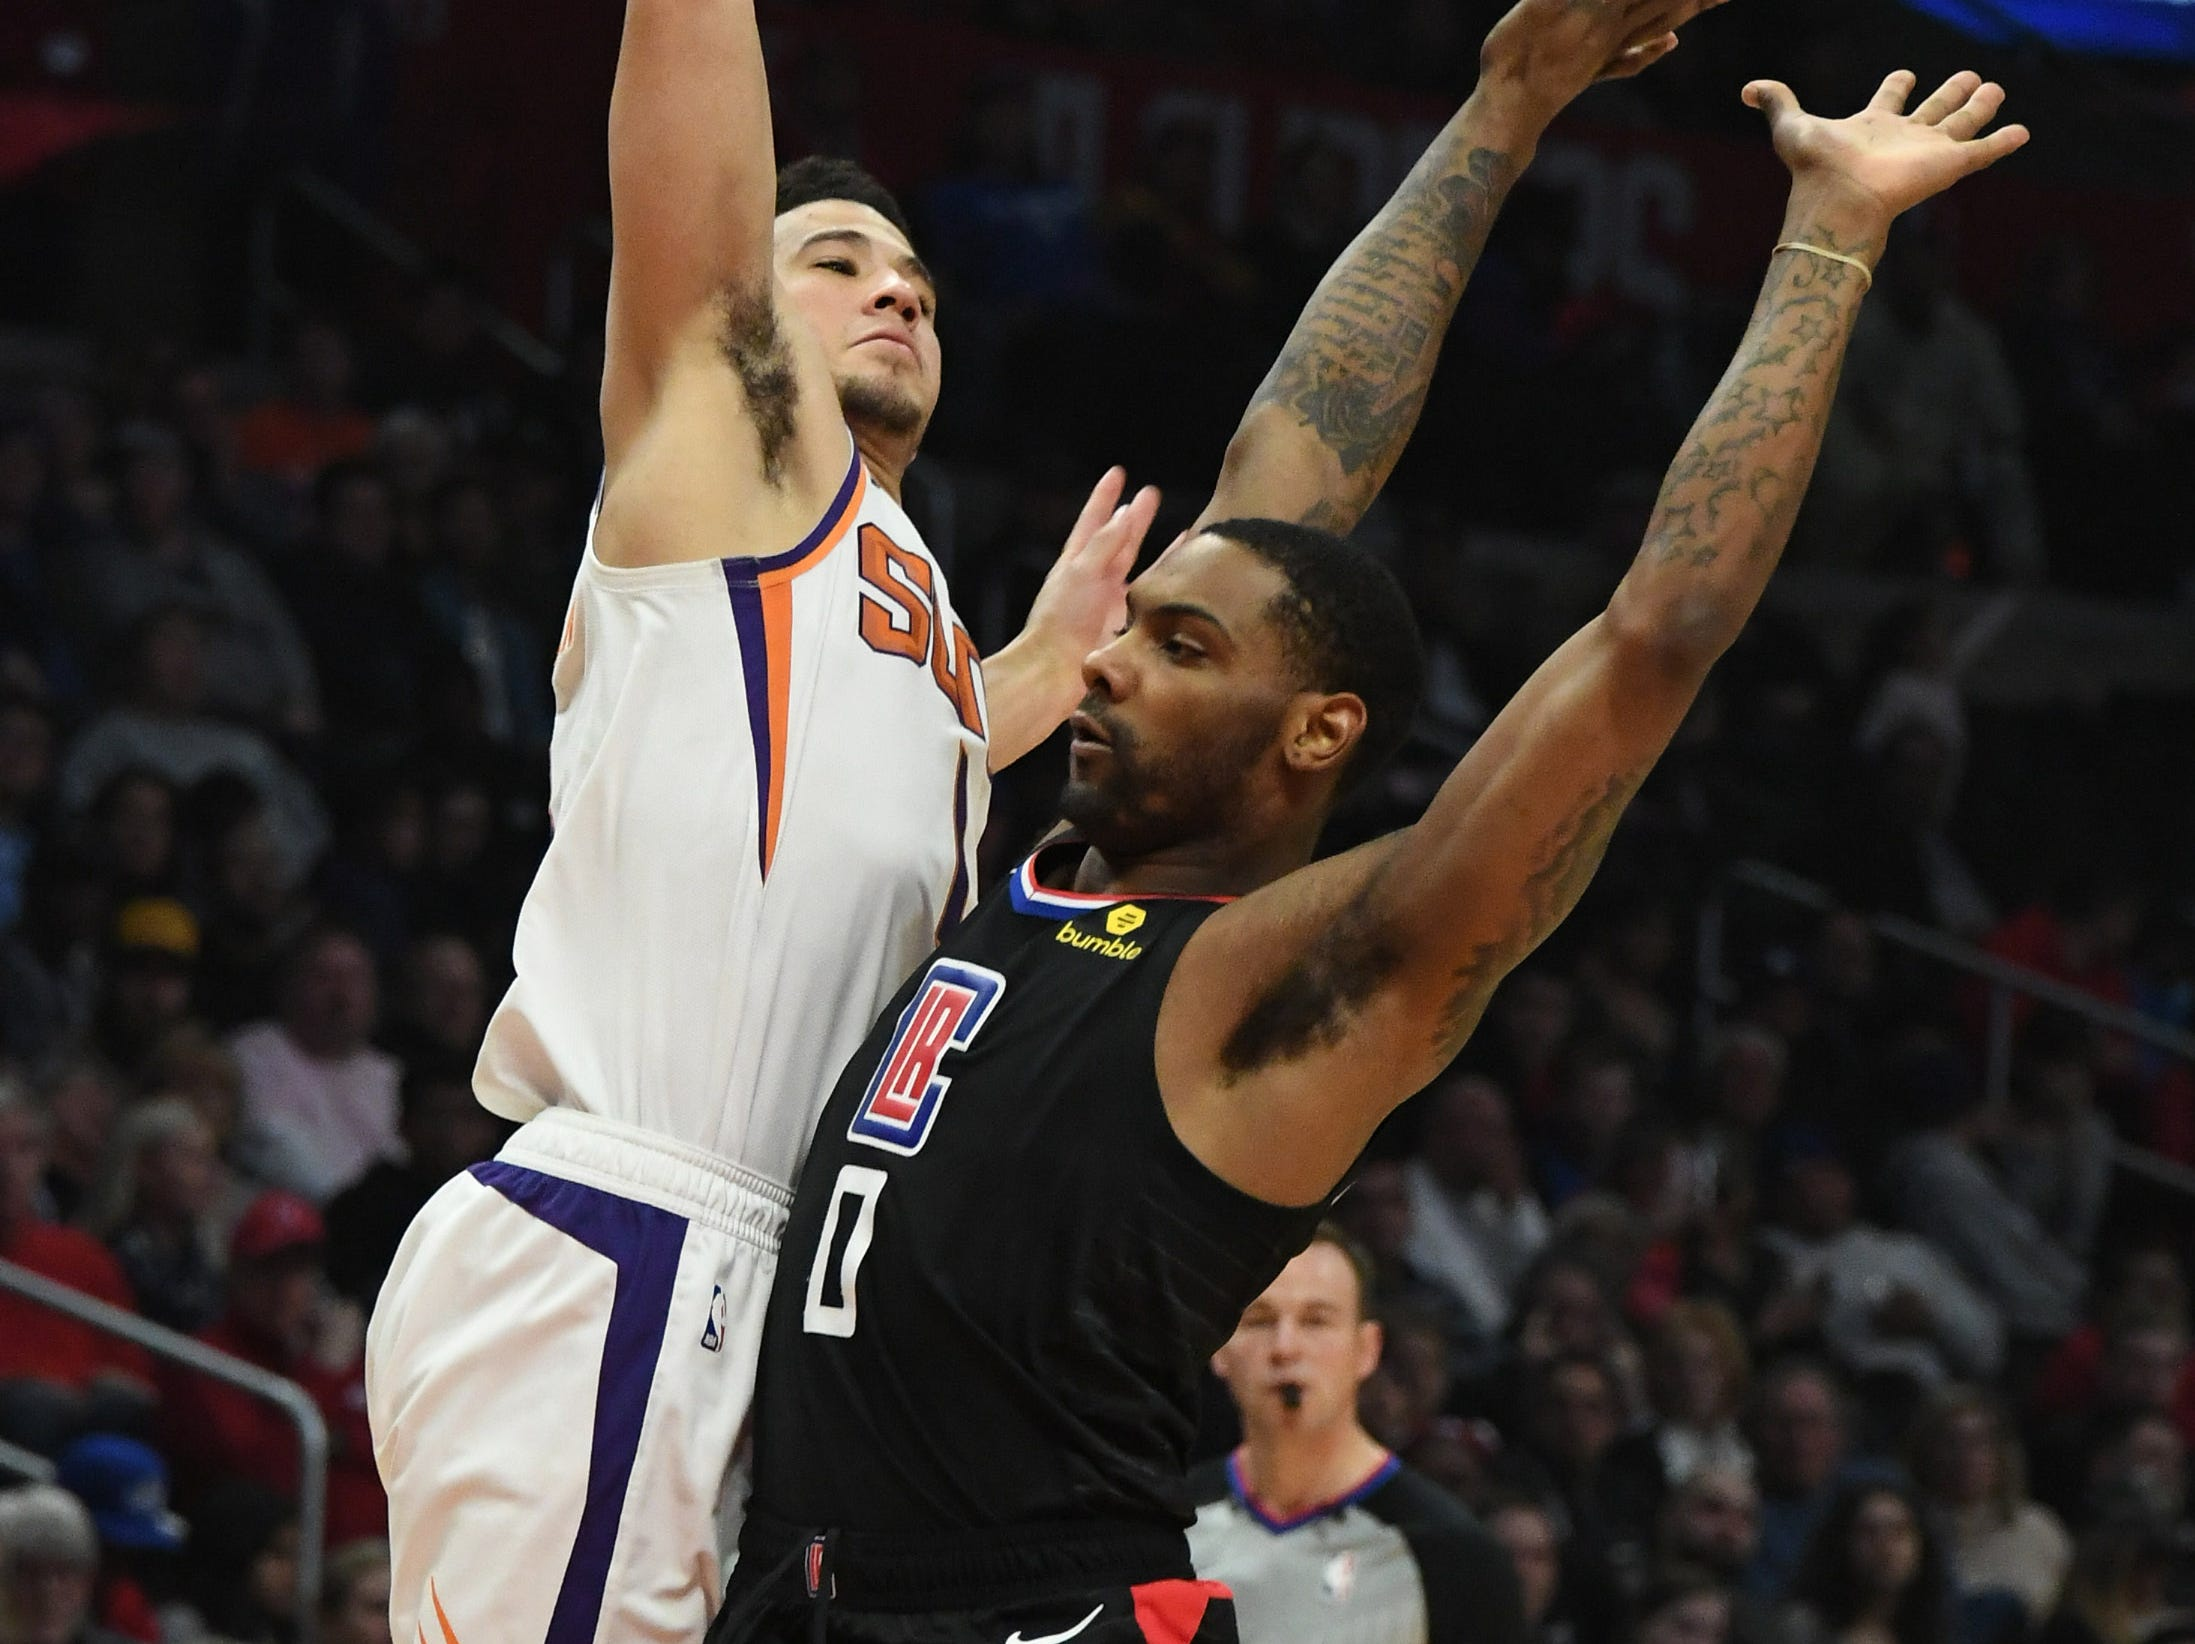 Feb 13, 2019; Los Angeles, CA, USA; Phoenix Suns guard Devin Booker (1) shoots against LA Clippers guard Sindarius Thornwell (0) in the first half at Staples Center. Mandatory Credit: Richard Mackson-USA TODAY Sports